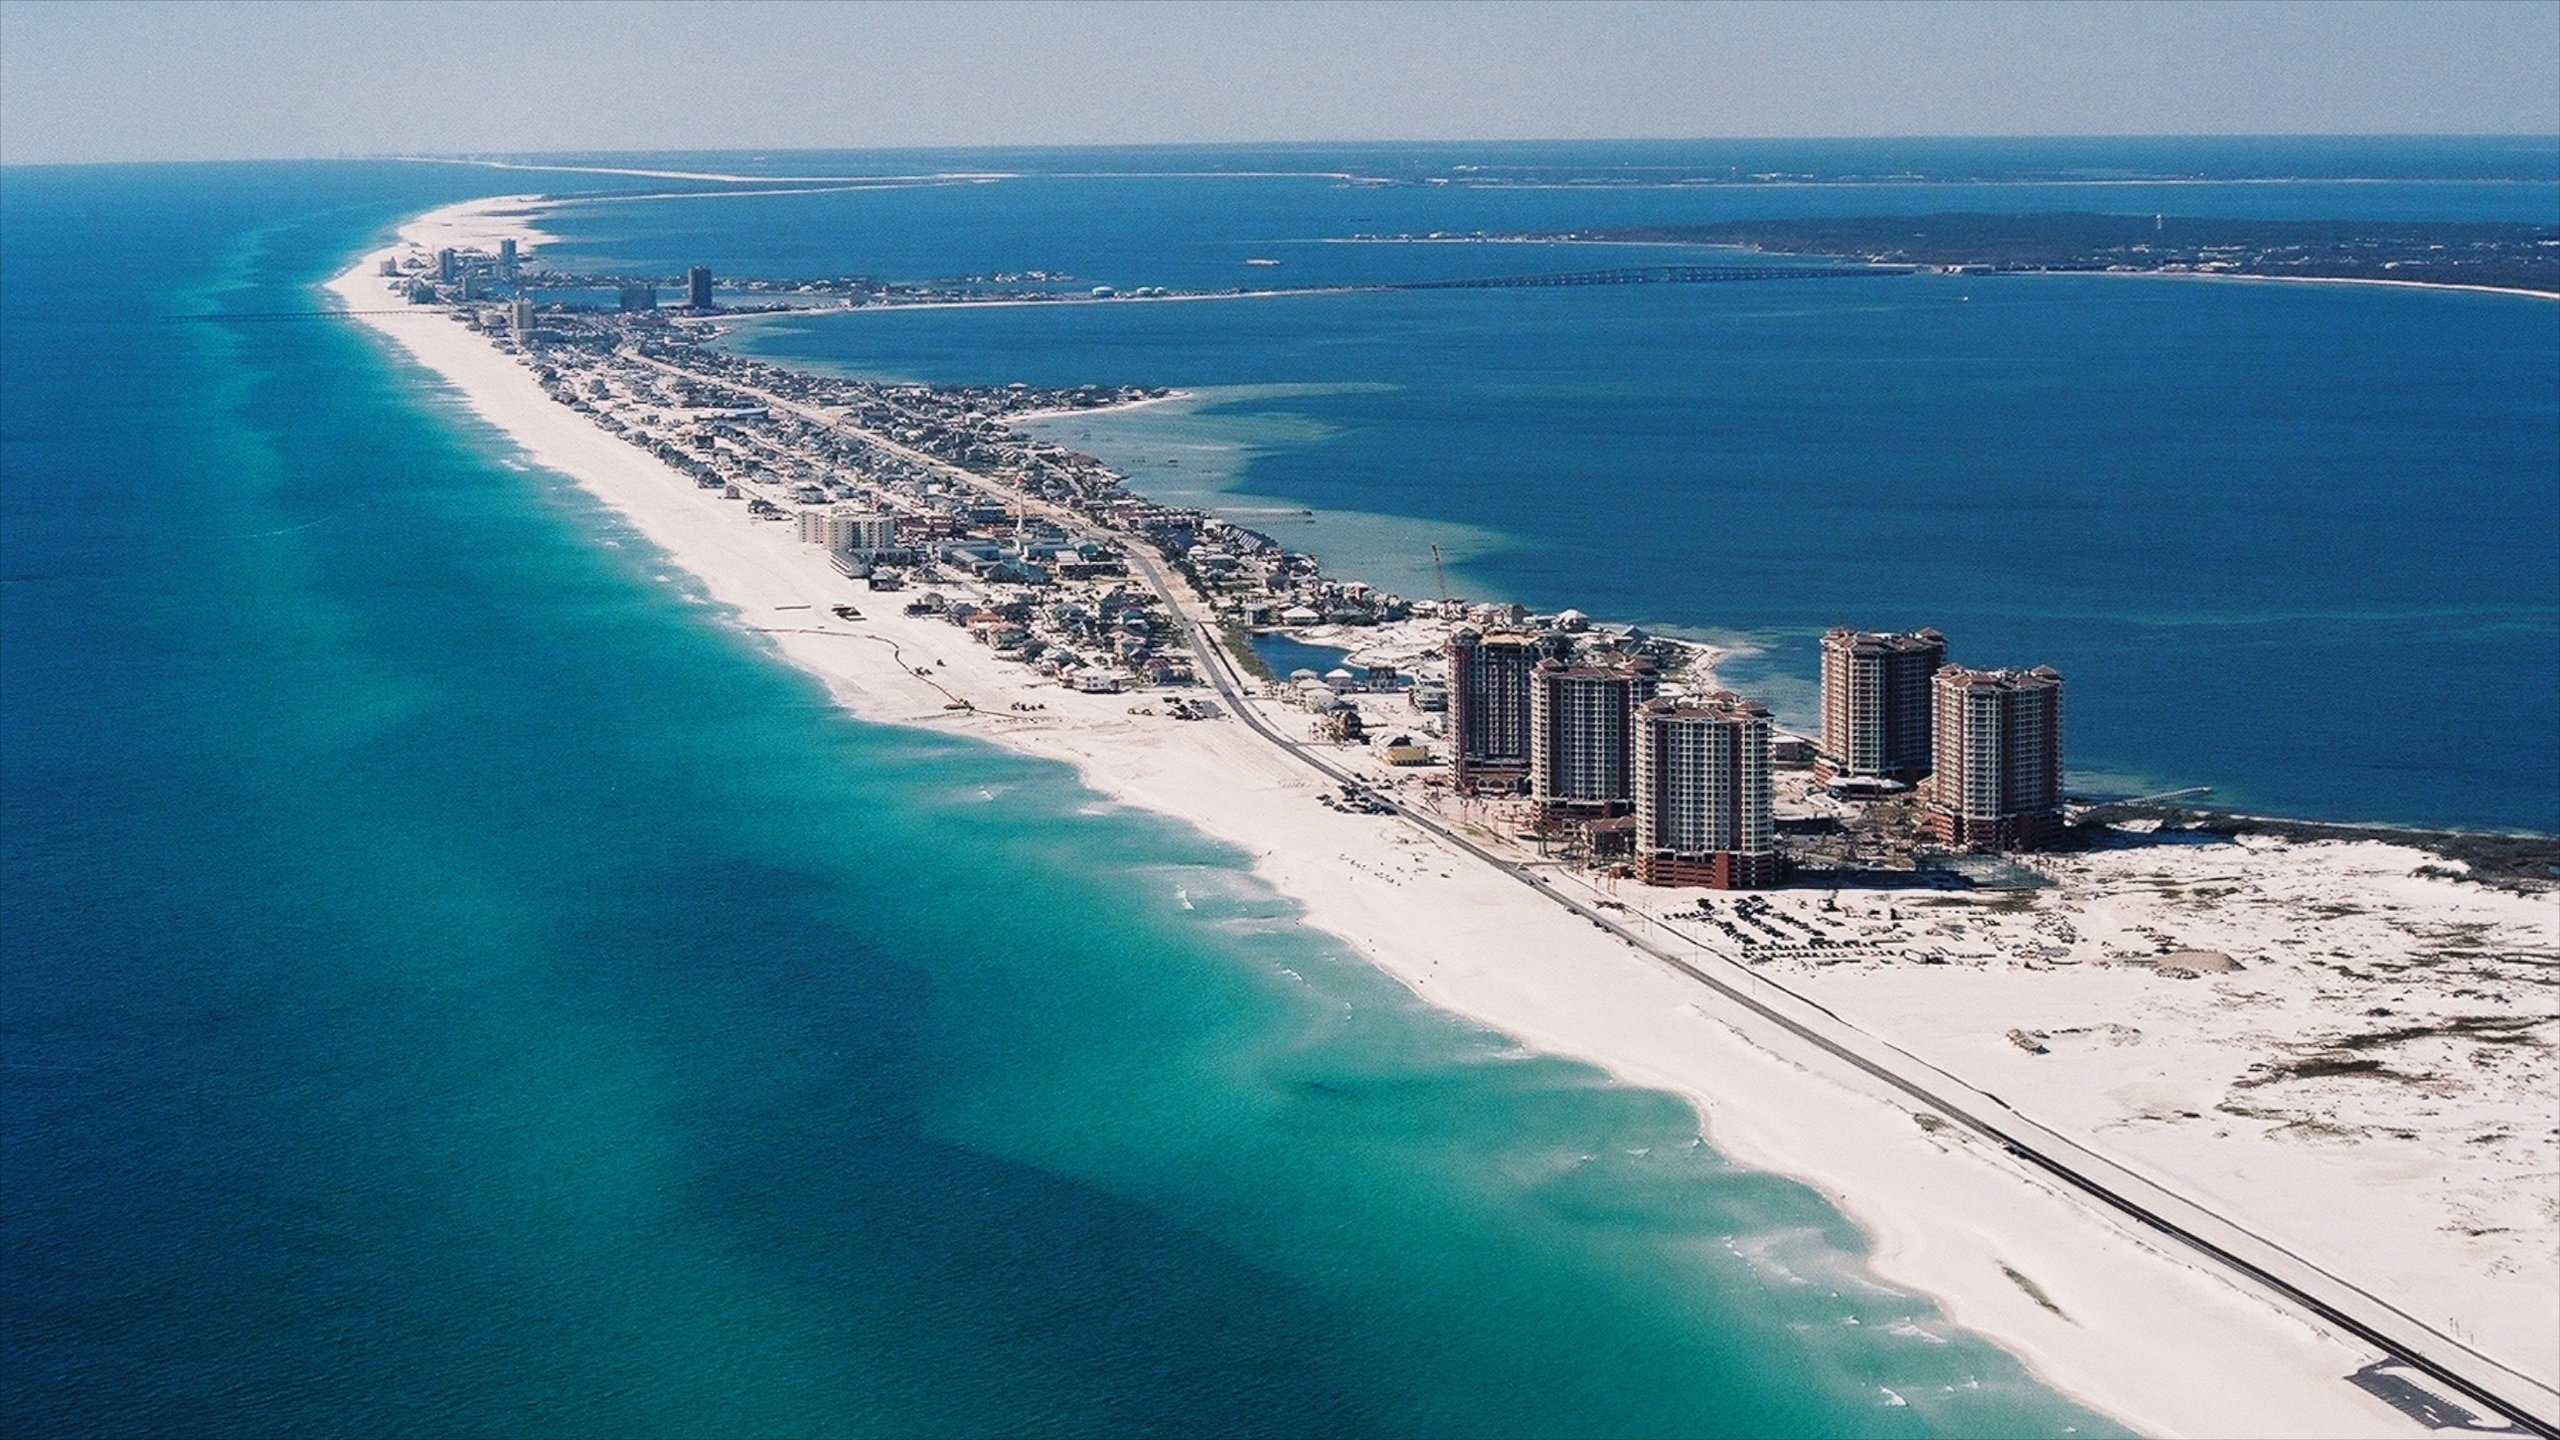 Map Of Hotels In Pensacola Florida | Printable Maps Map Of Hotels In Pensacola on map of banks in pensacola, map of hotels daytona beach, map of istanbul hotels, map of washington hotels, map of austin hotels, map of dubai hotels, map of golf courses in pensacola, home in pensacola, map of santa fe hotels, map of marinas in pensacola,